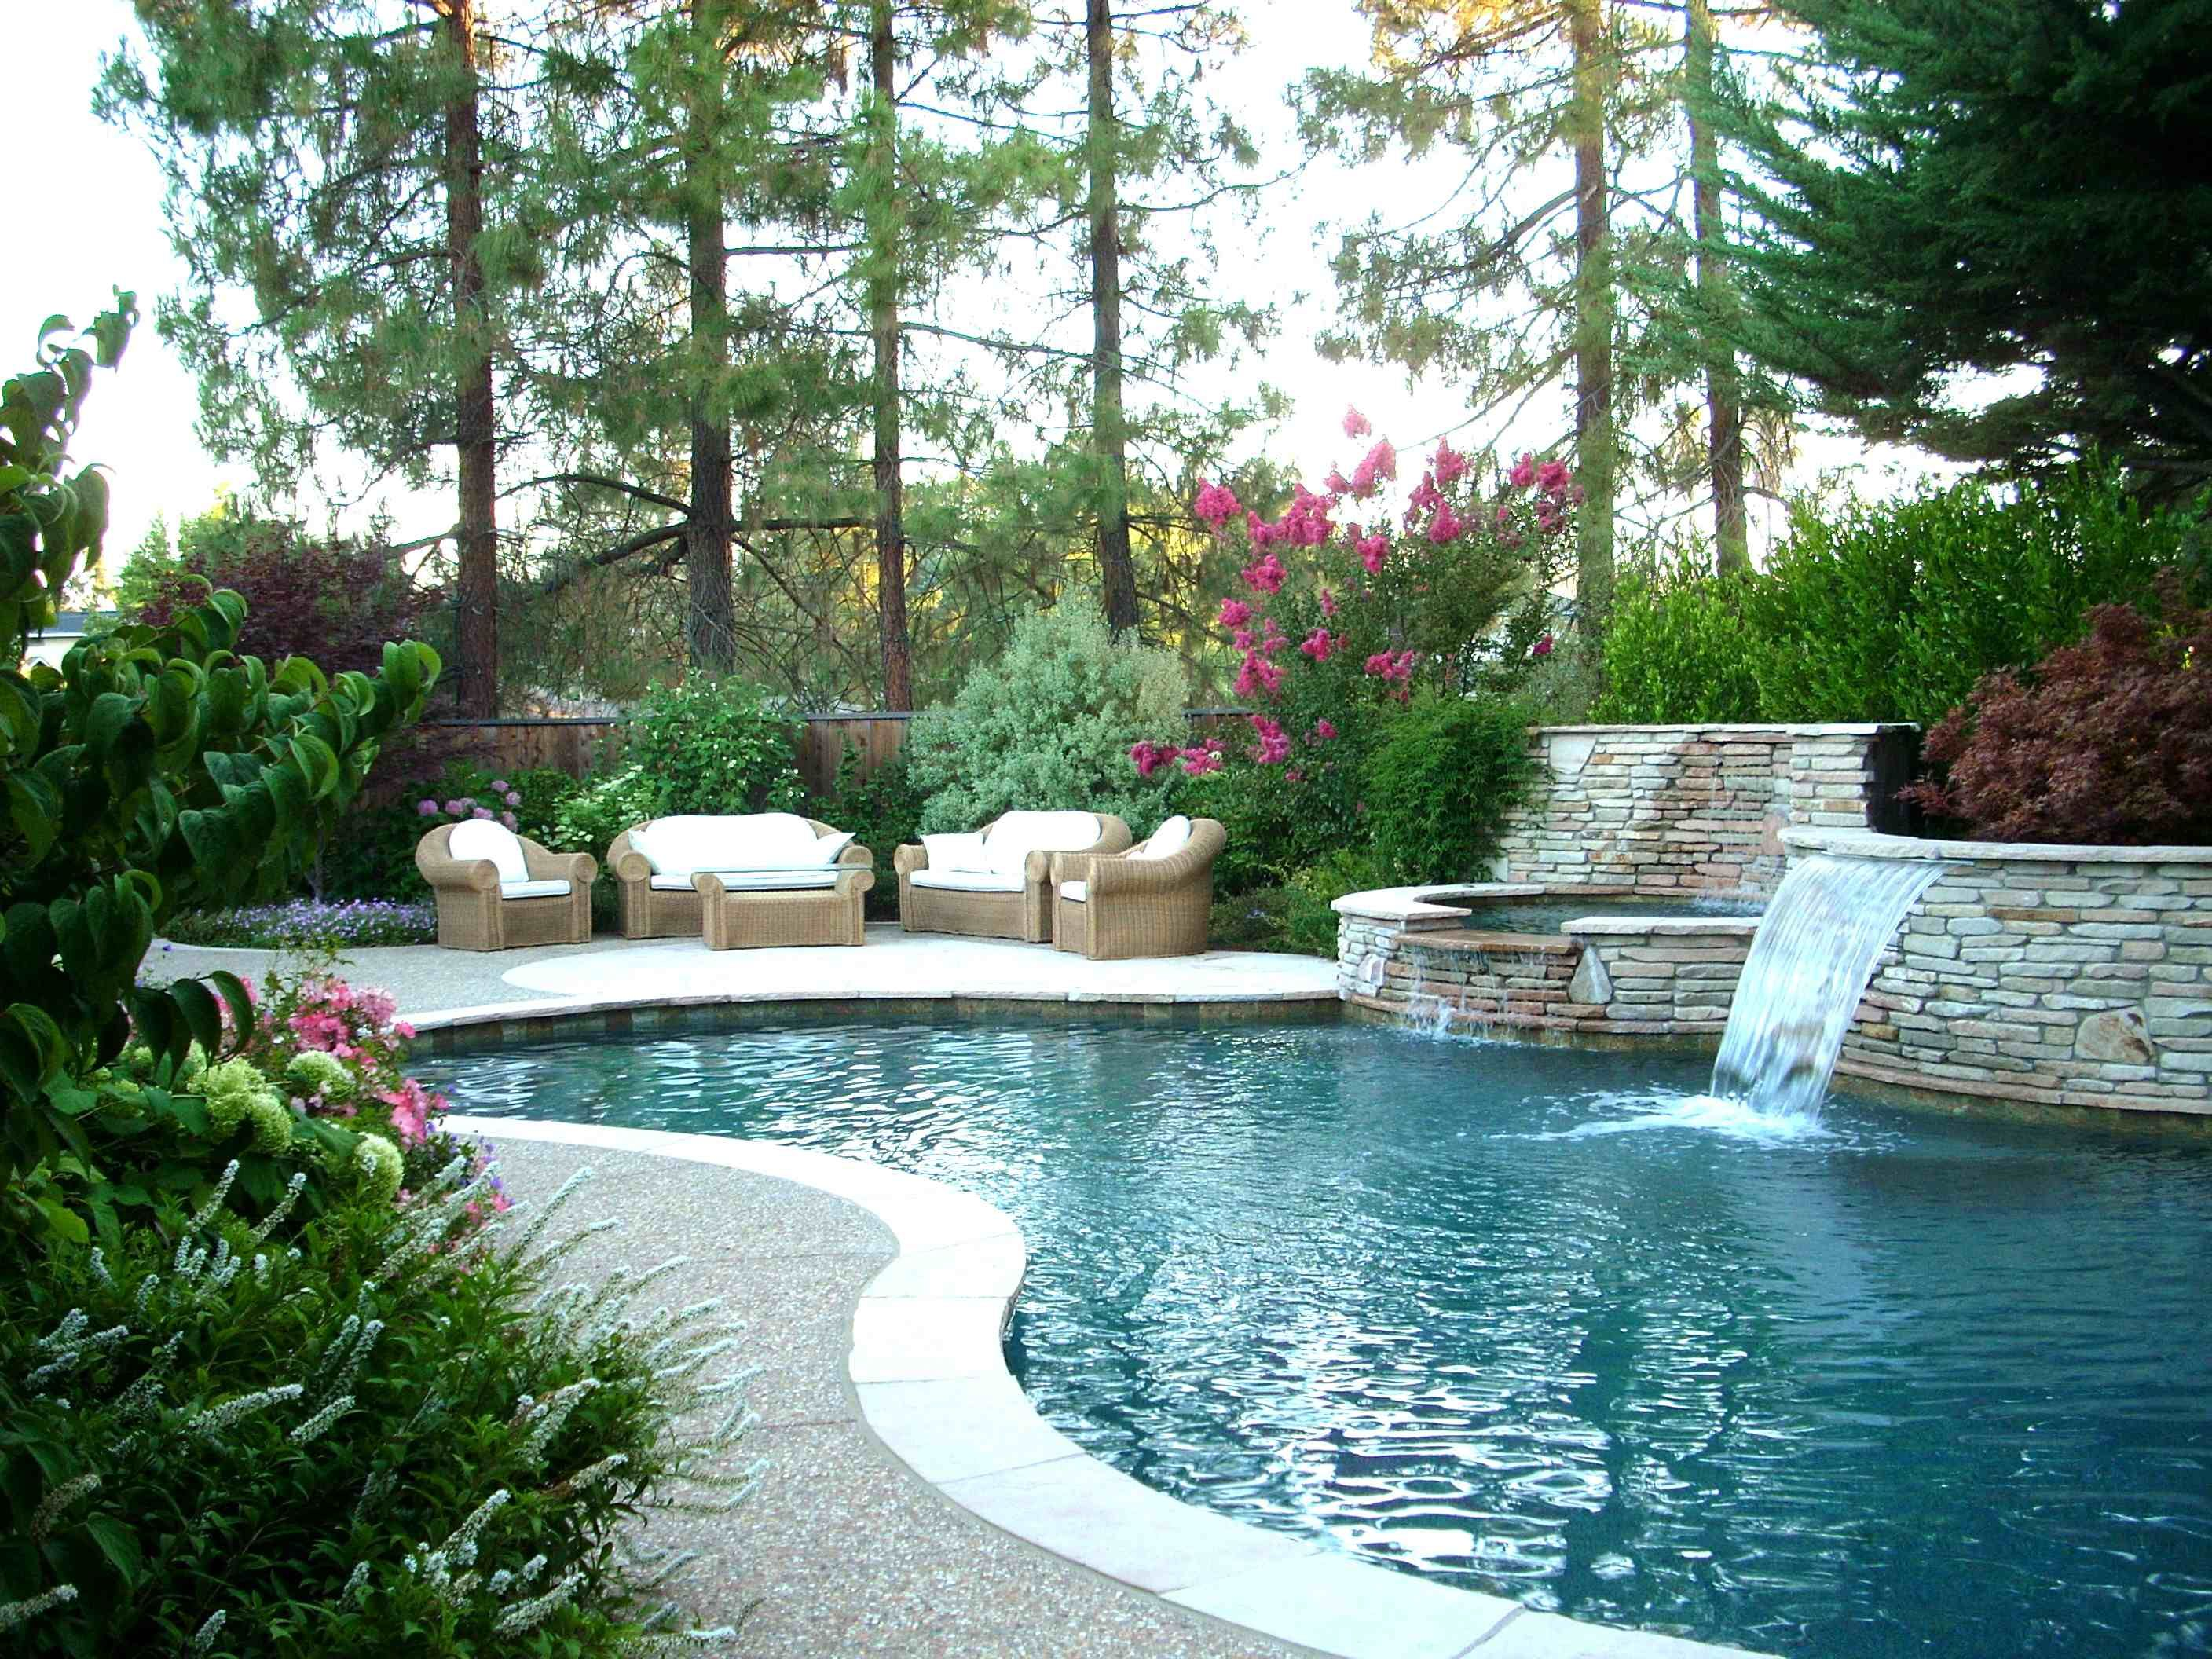 Landscaped pool pictures landscape design ideas for for Pool with garden